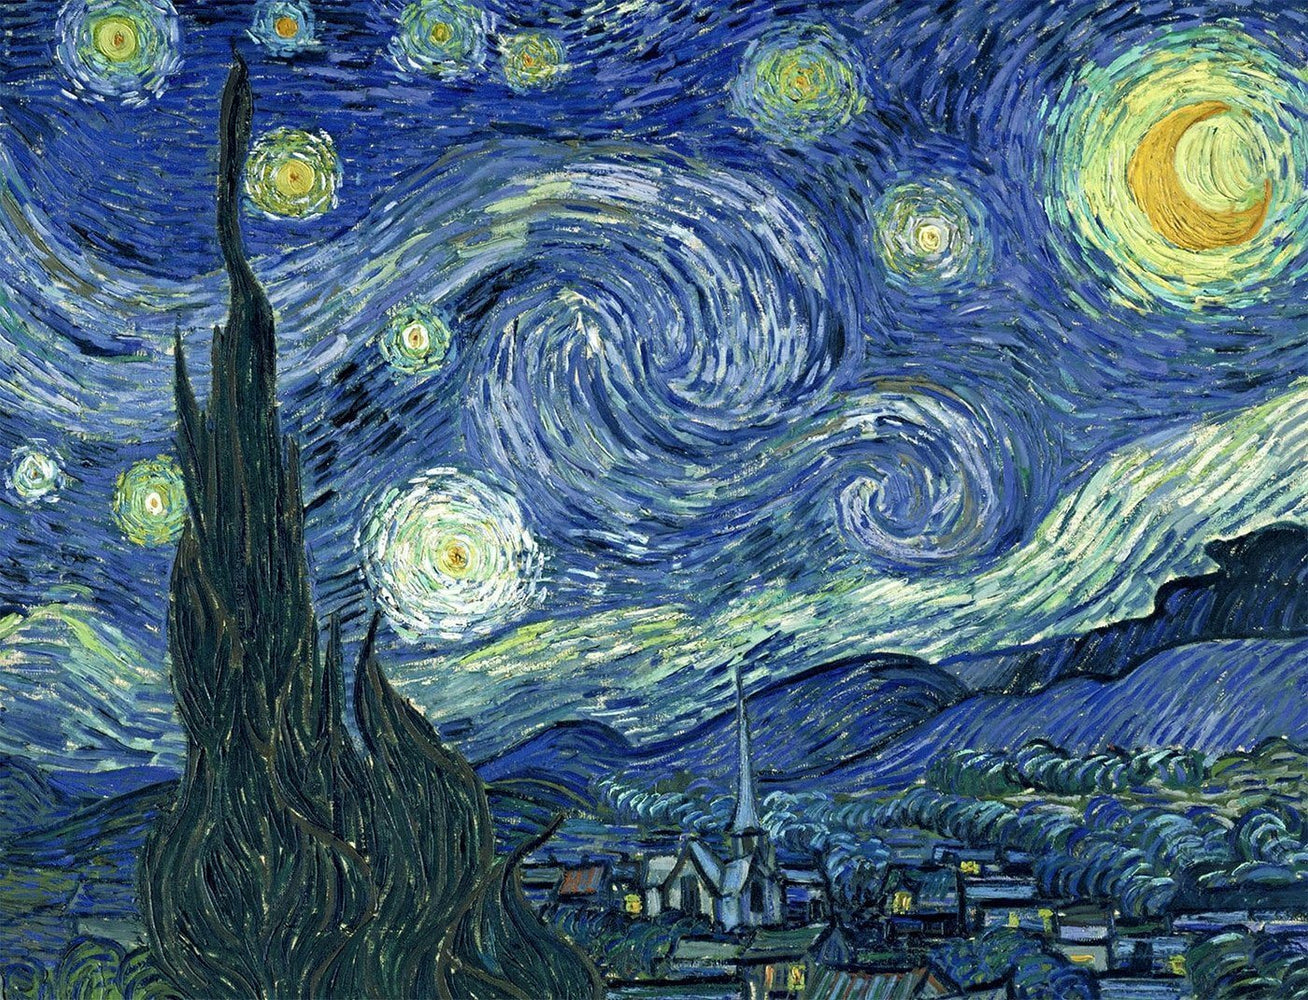 Starry Night by Vincent van Gogh Jigsaw Puzzle, 500 or 1000 Pieces - All Jigsaw Puzzles